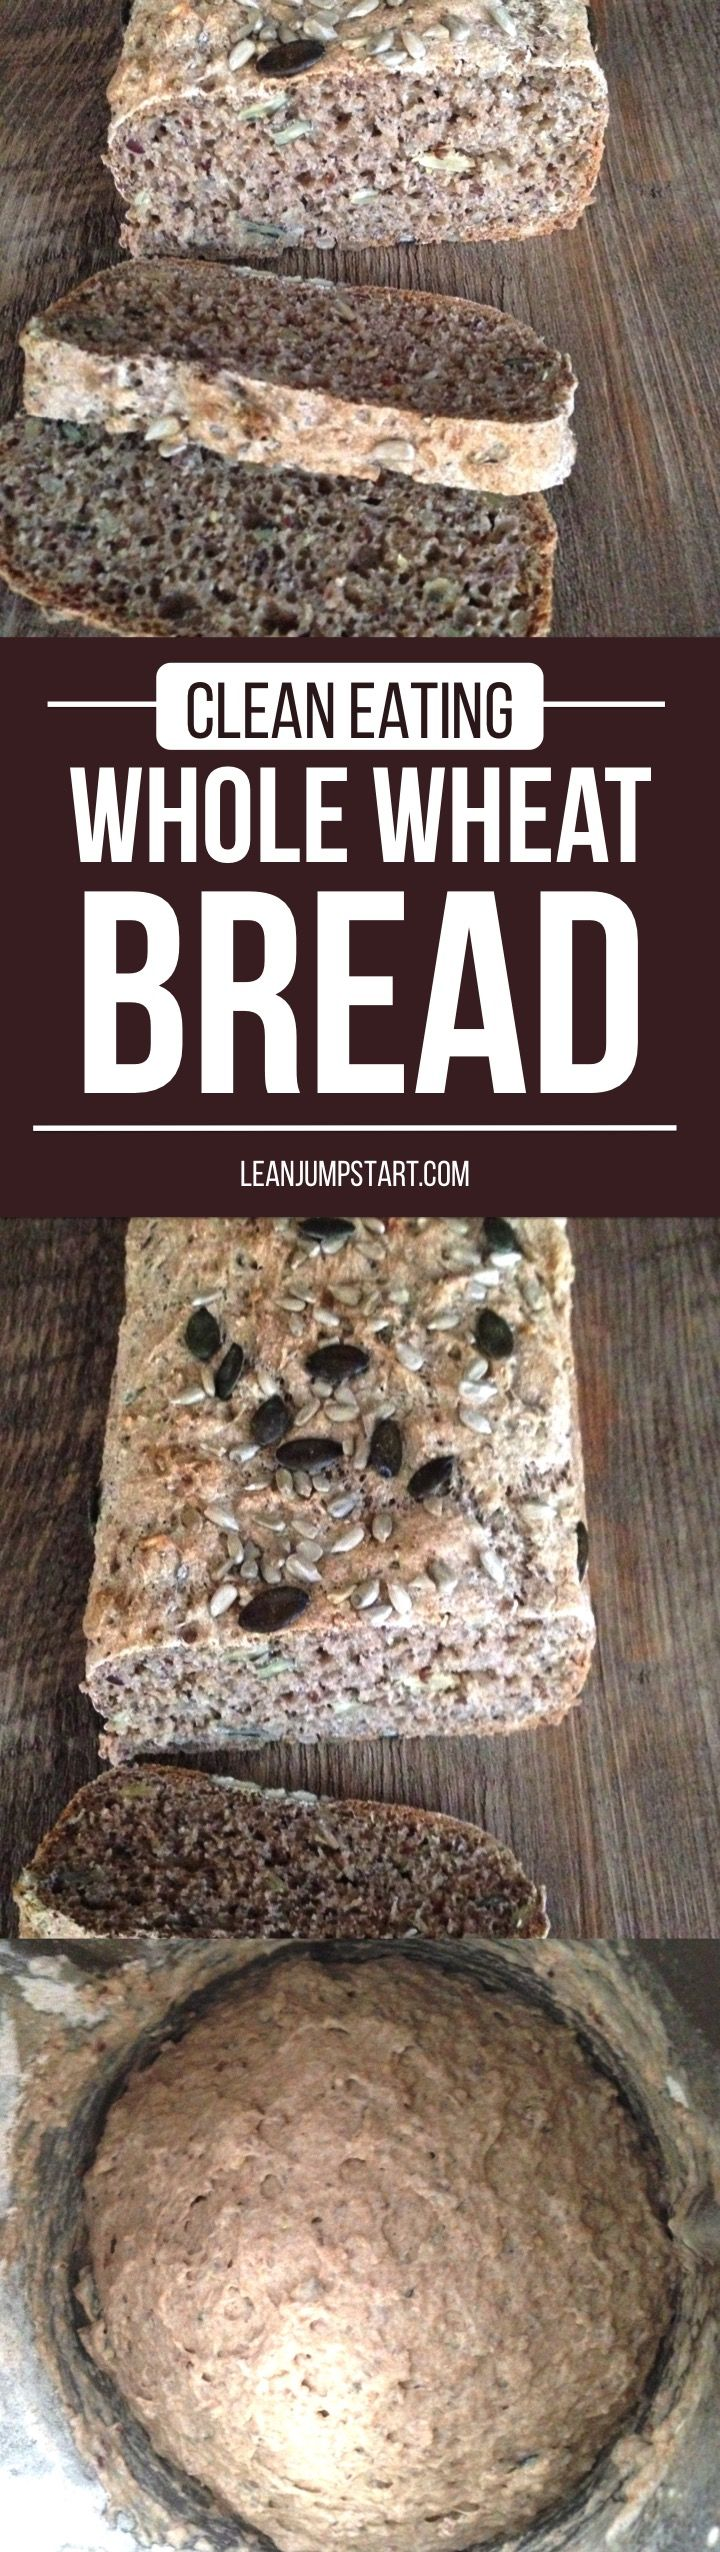 Whole wheat bread recipe: ridiculously easy with a 3-minute dough via @leanjumpstart